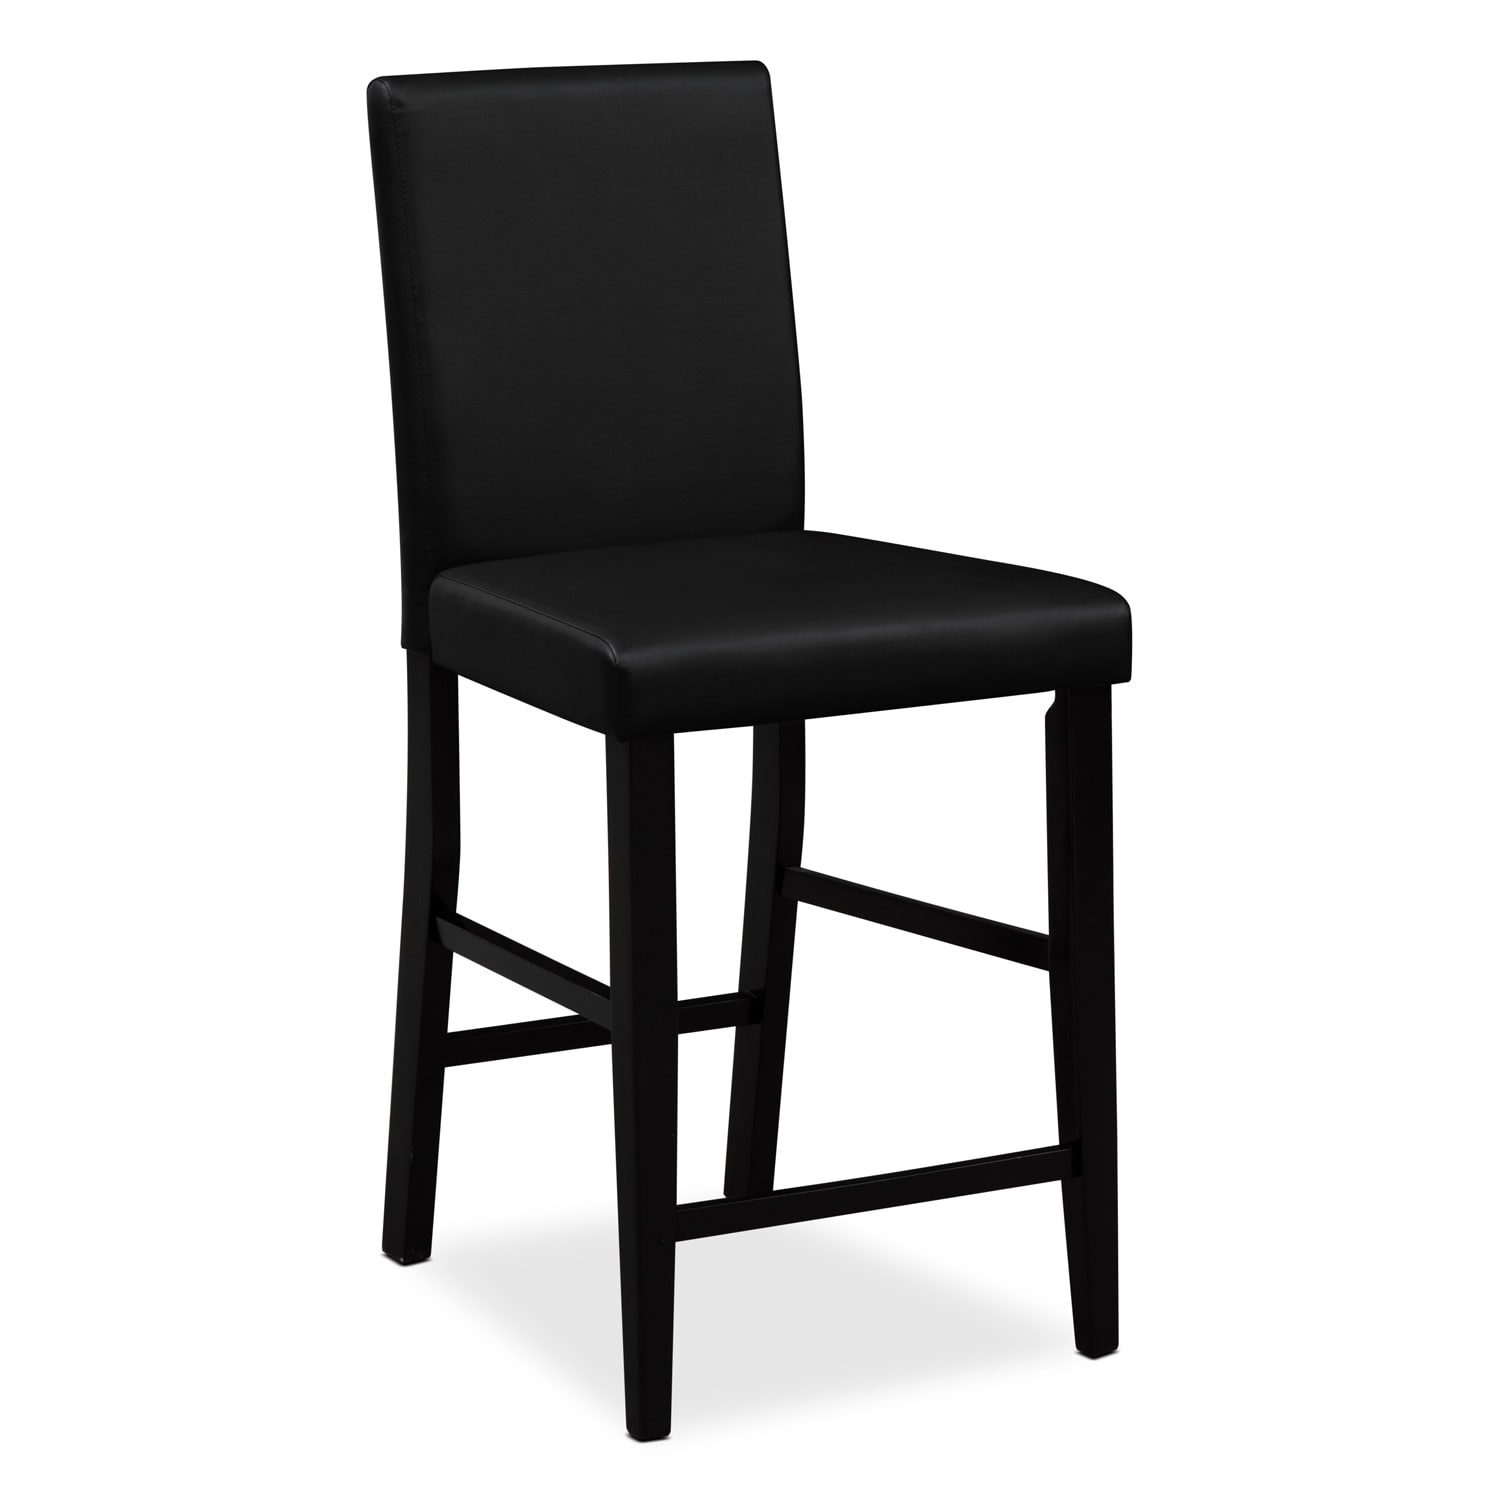 Dining Bar Stools: Shadow Counter-Height Stool - Black